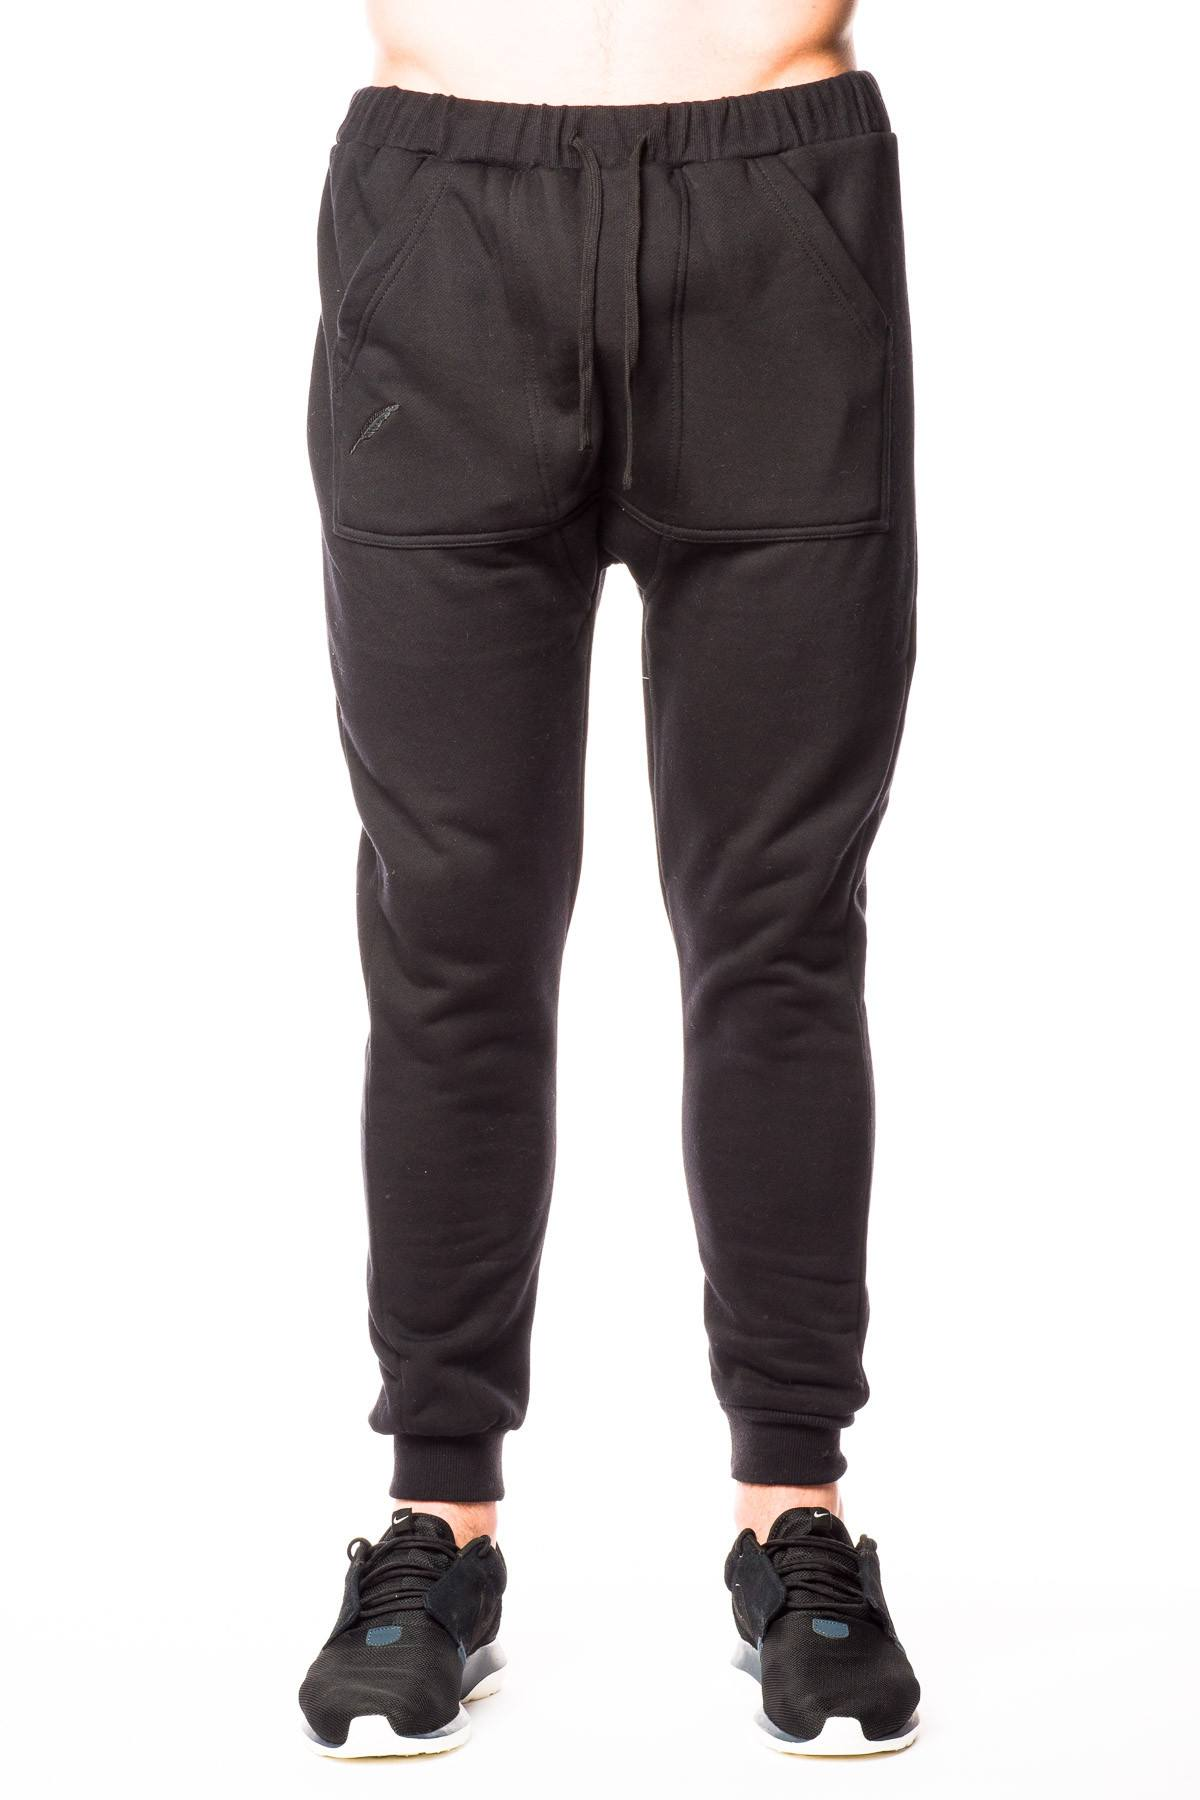 Bottoms - Publish Branwood Jogger Pant